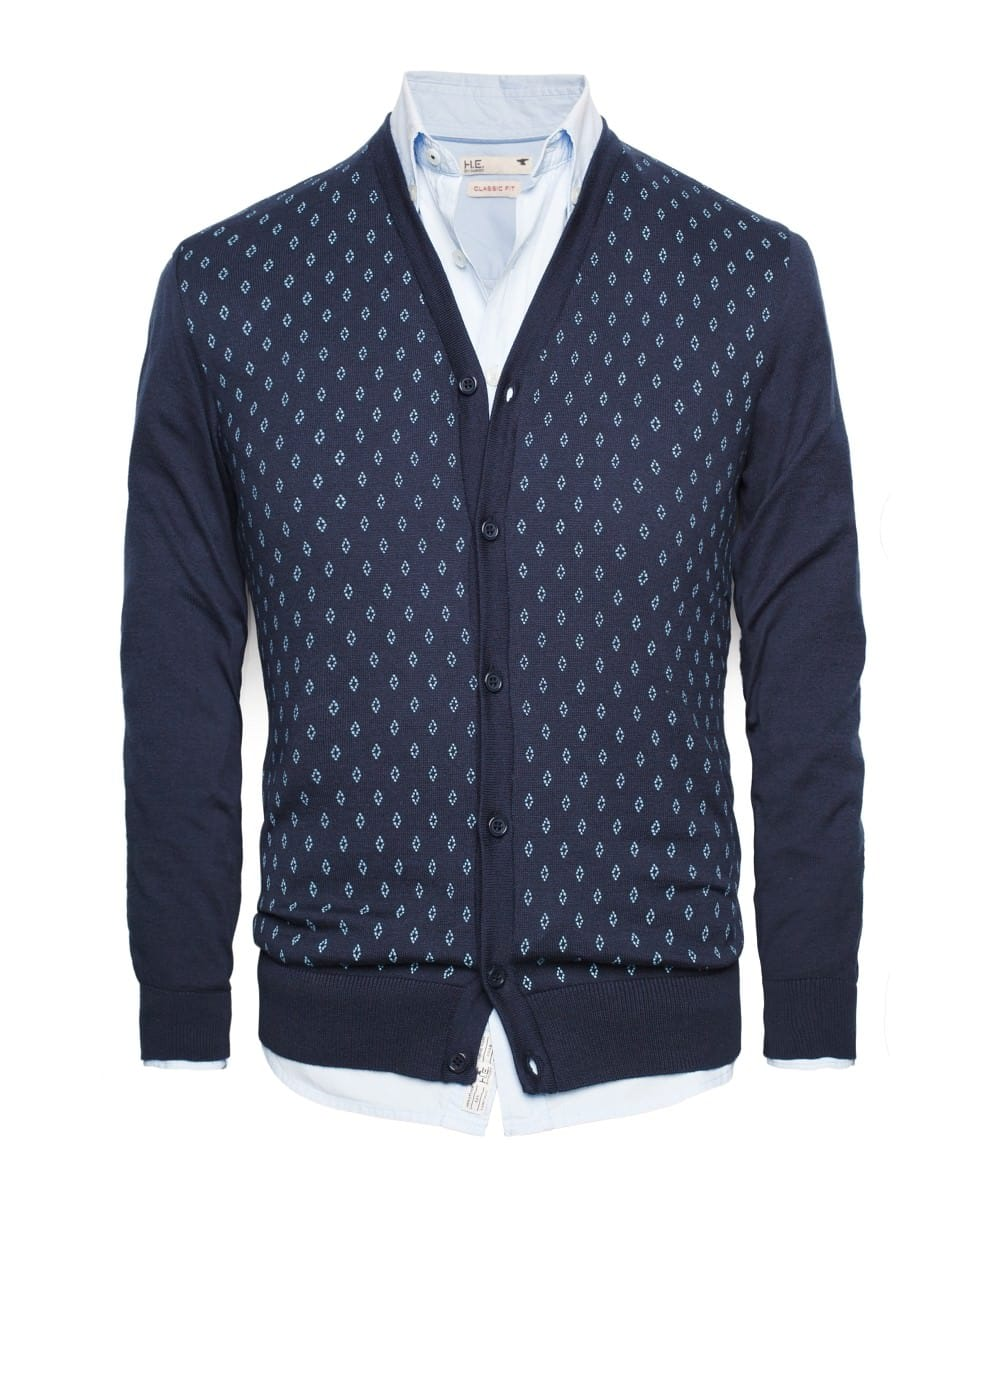 Rhombus print cotton cardigan